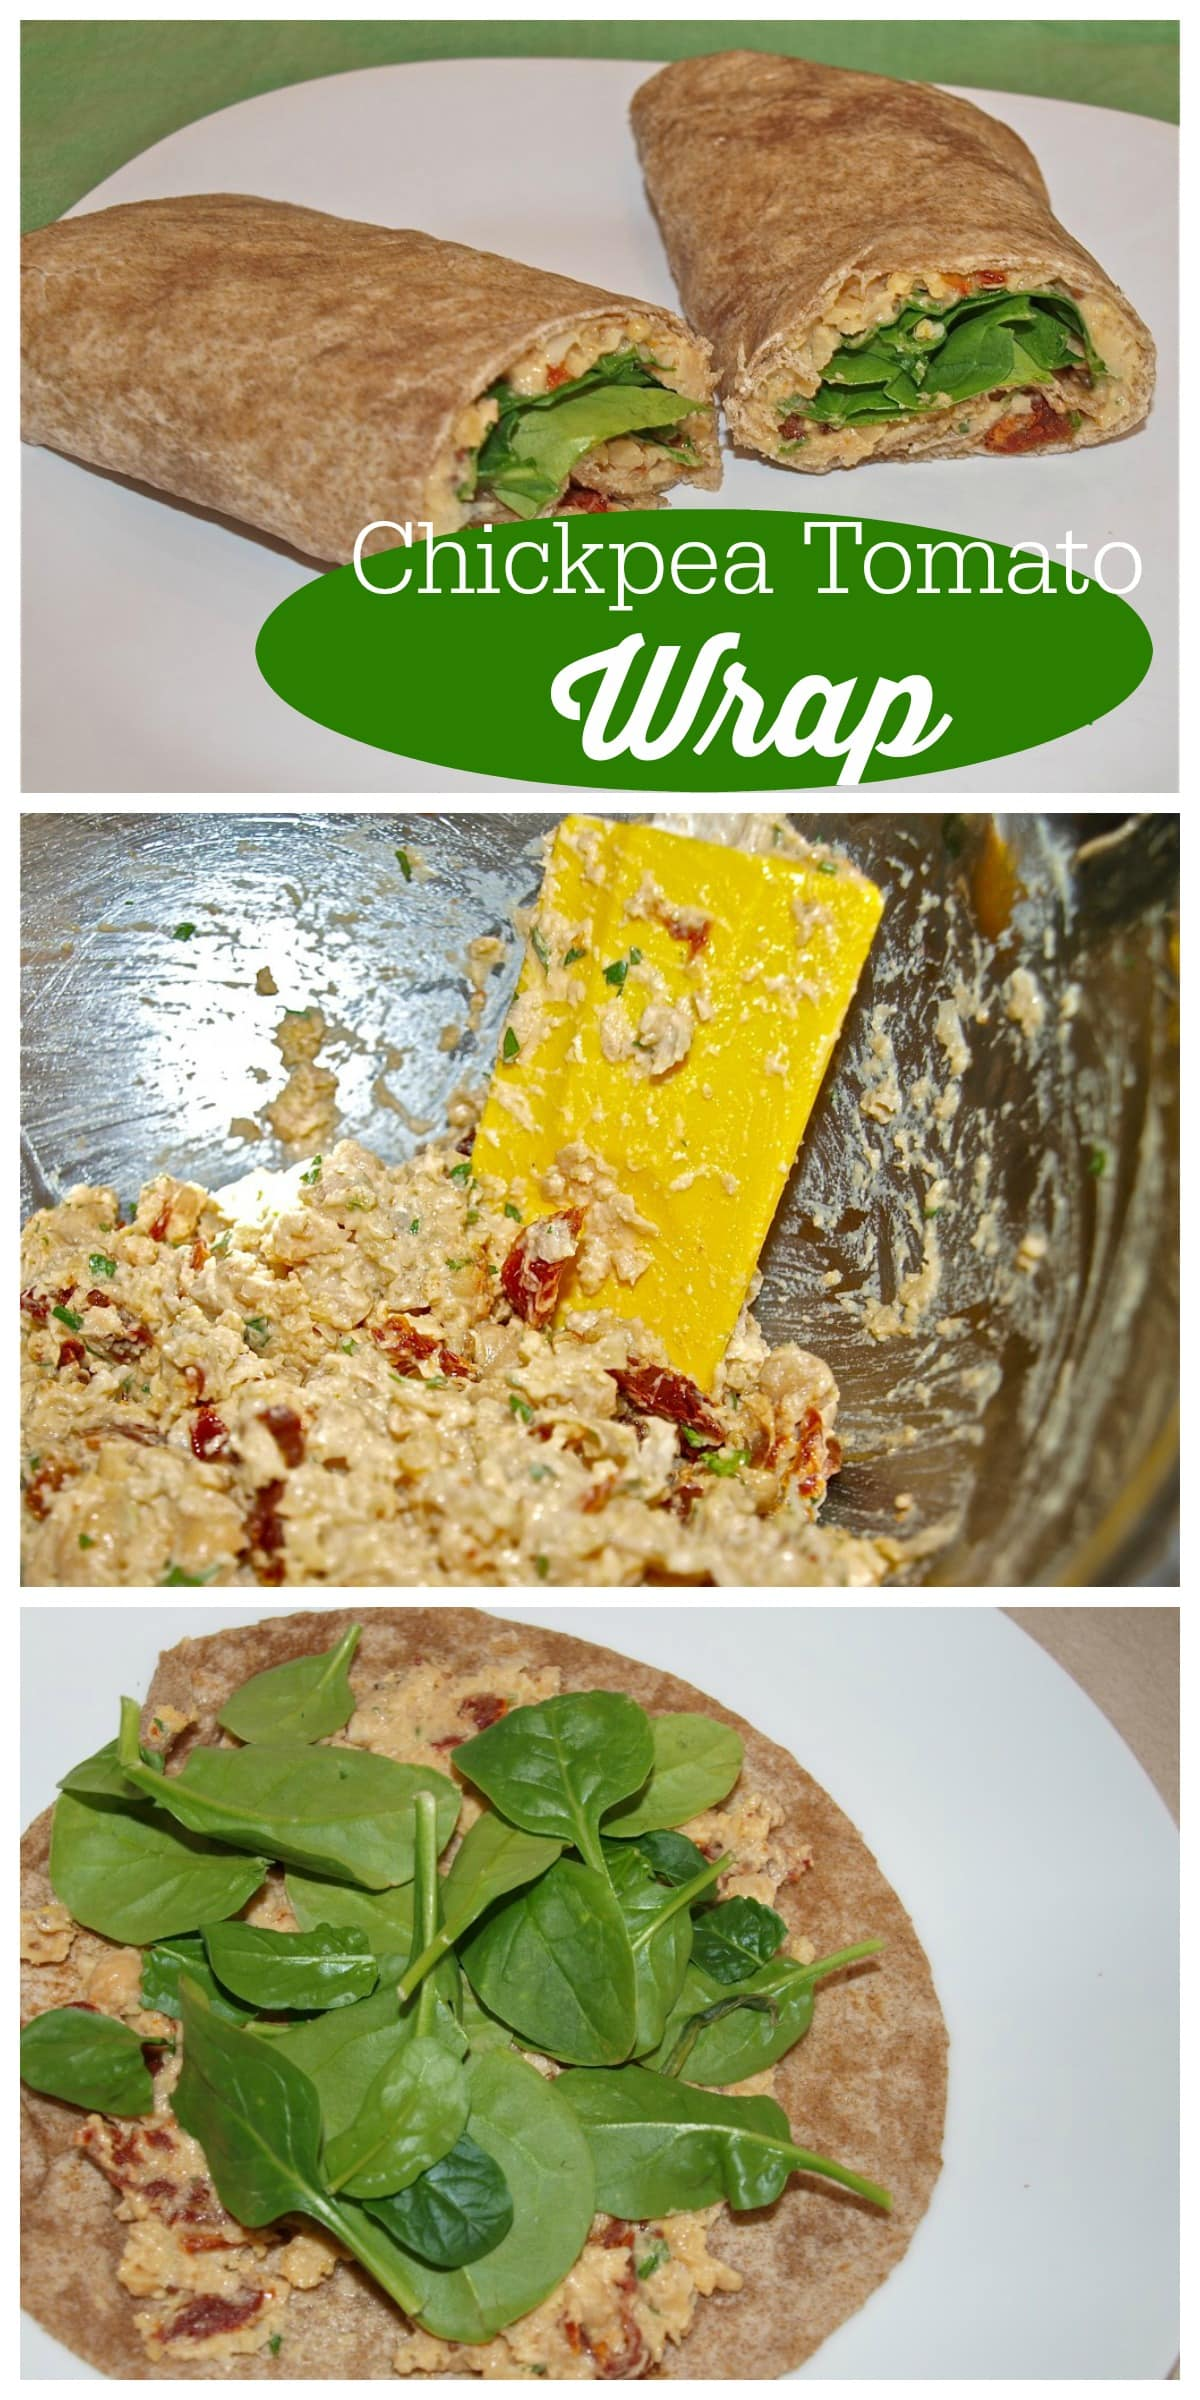 This Chickpea Tomato Wrap is a super easy meatless lunch recipe.